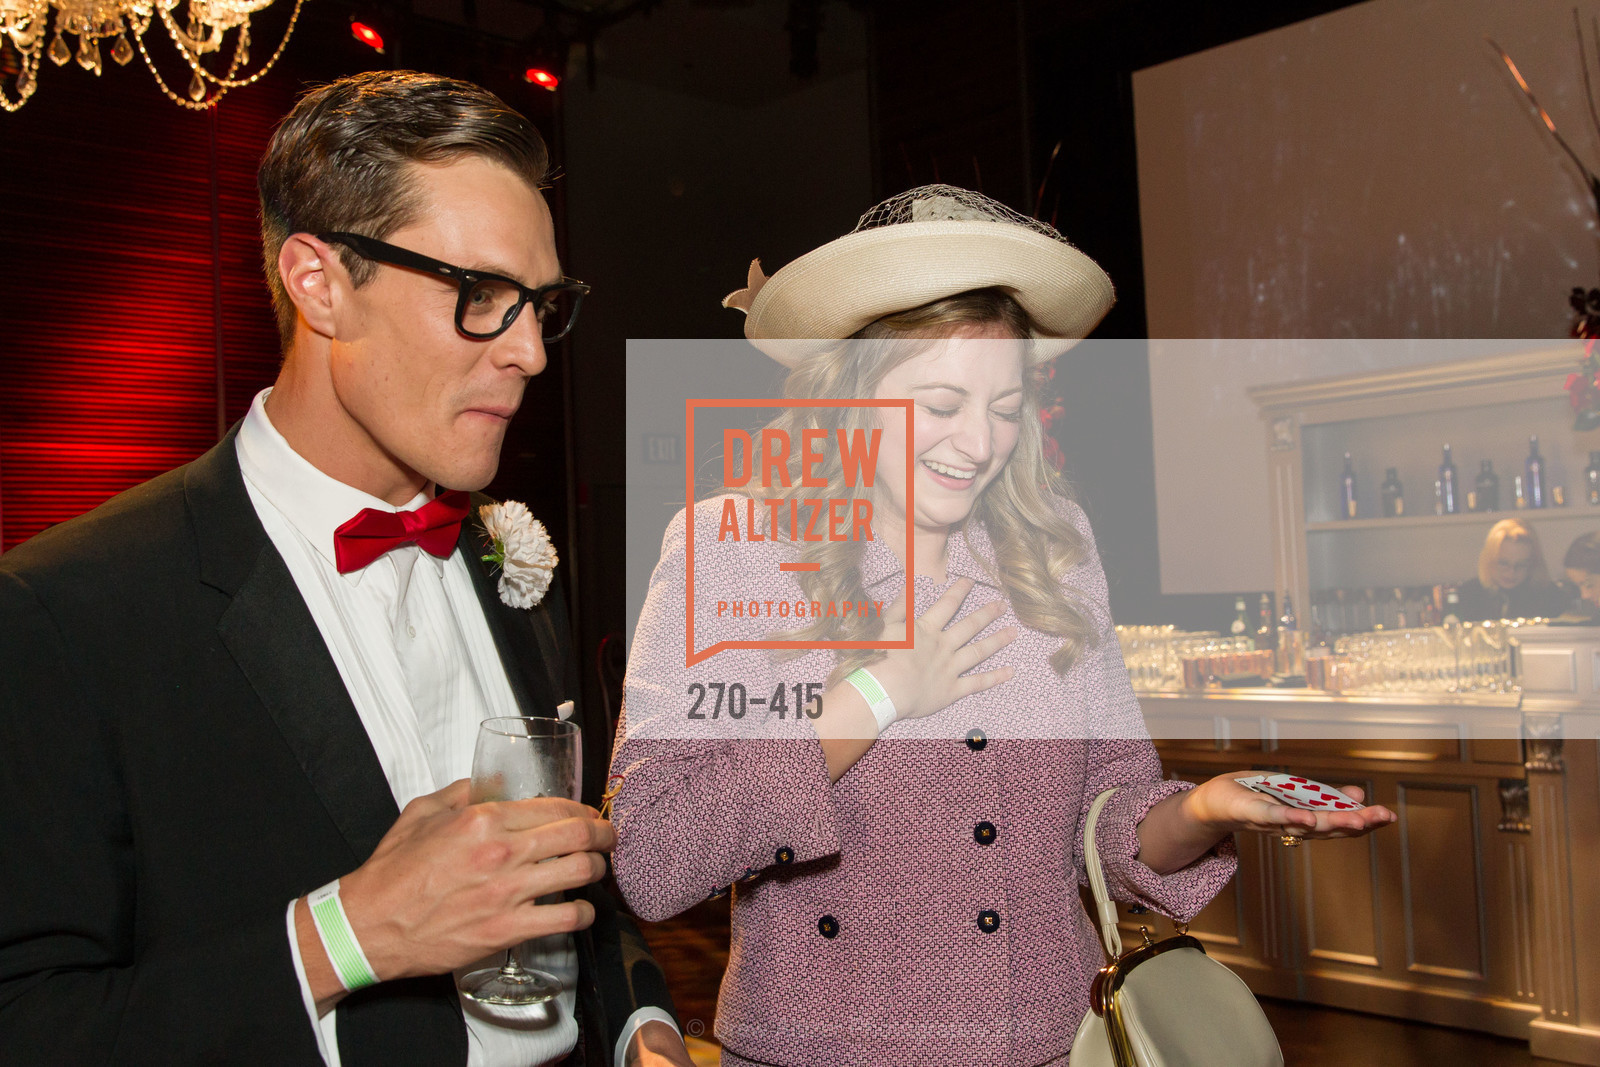 Stephen Wattrus, Julia Adamo, SPOOKED AT THE STRAND Presented by the American Conservatory Theater, The Strand Theater. 1127 Market Street, October 26th, 2015,Drew Altizer, Drew Altizer Photography, full-service agency, private events, San Francisco photographer, photographer california